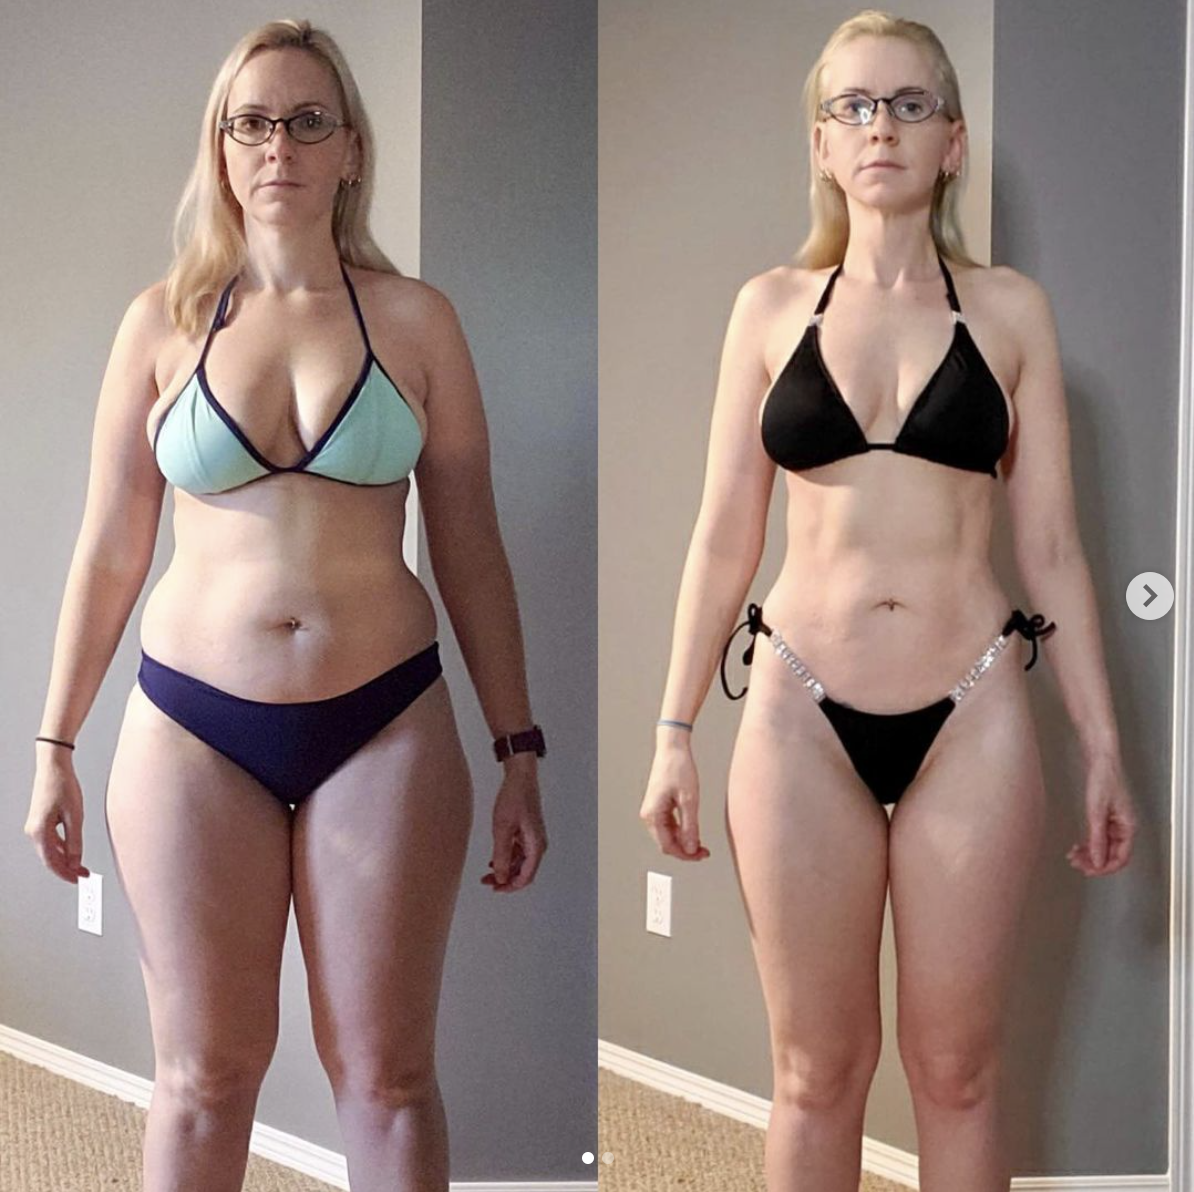 gfit client jacqui rademaker before and after picture